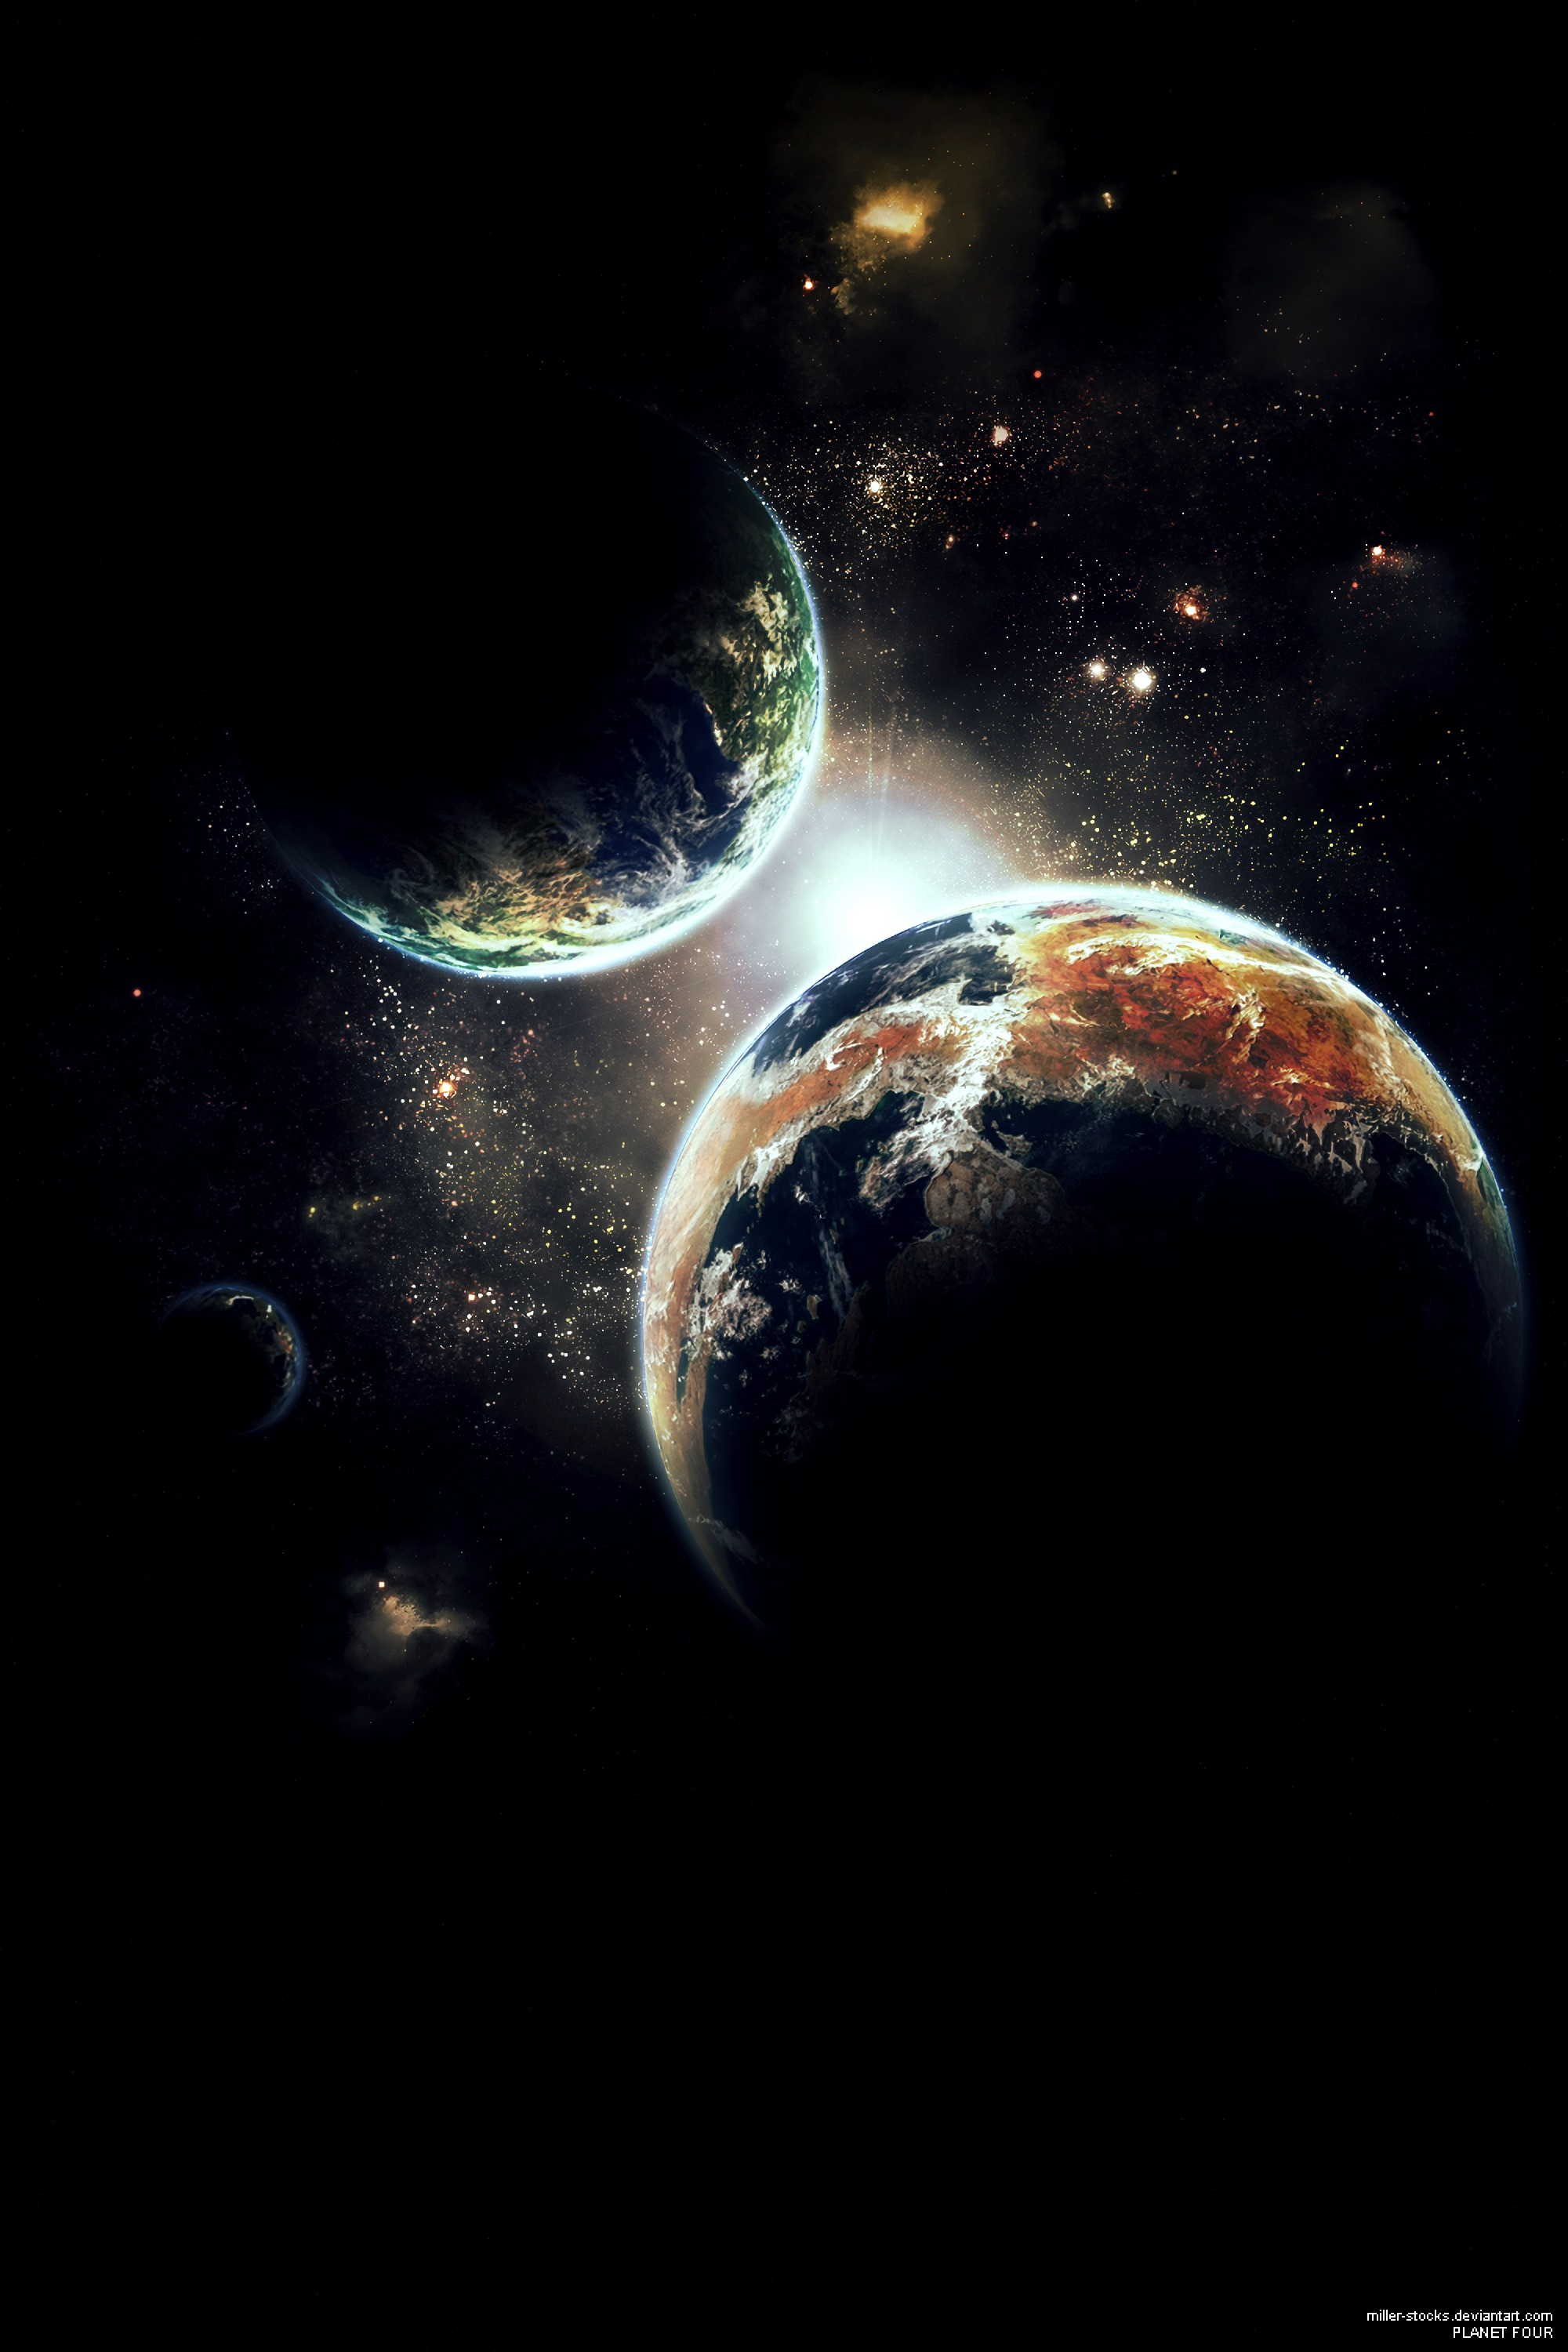 157139 download wallpaper Universe, Shining, Flash, Galaxy, Dark, Stars, Planets screensavers and pictures for free